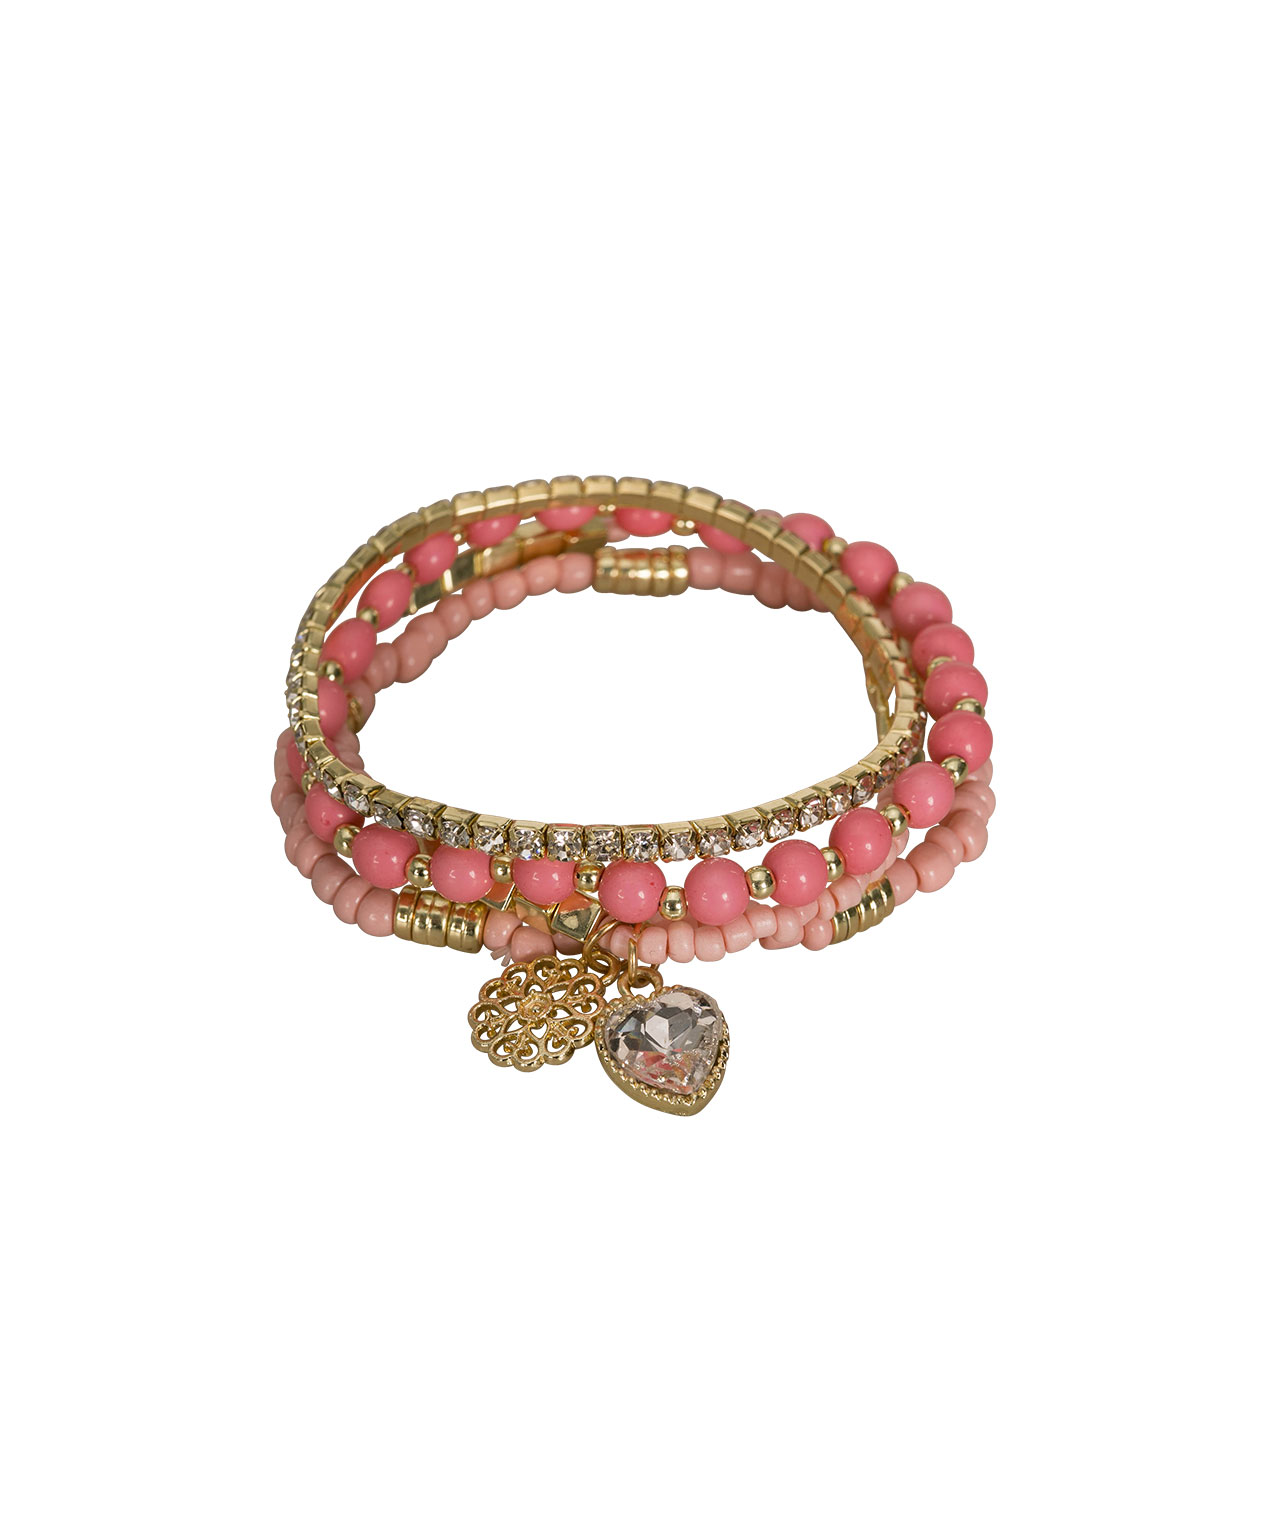 Beaded Stretch Bracelet Set, Pink/Soft Gold, hi-res